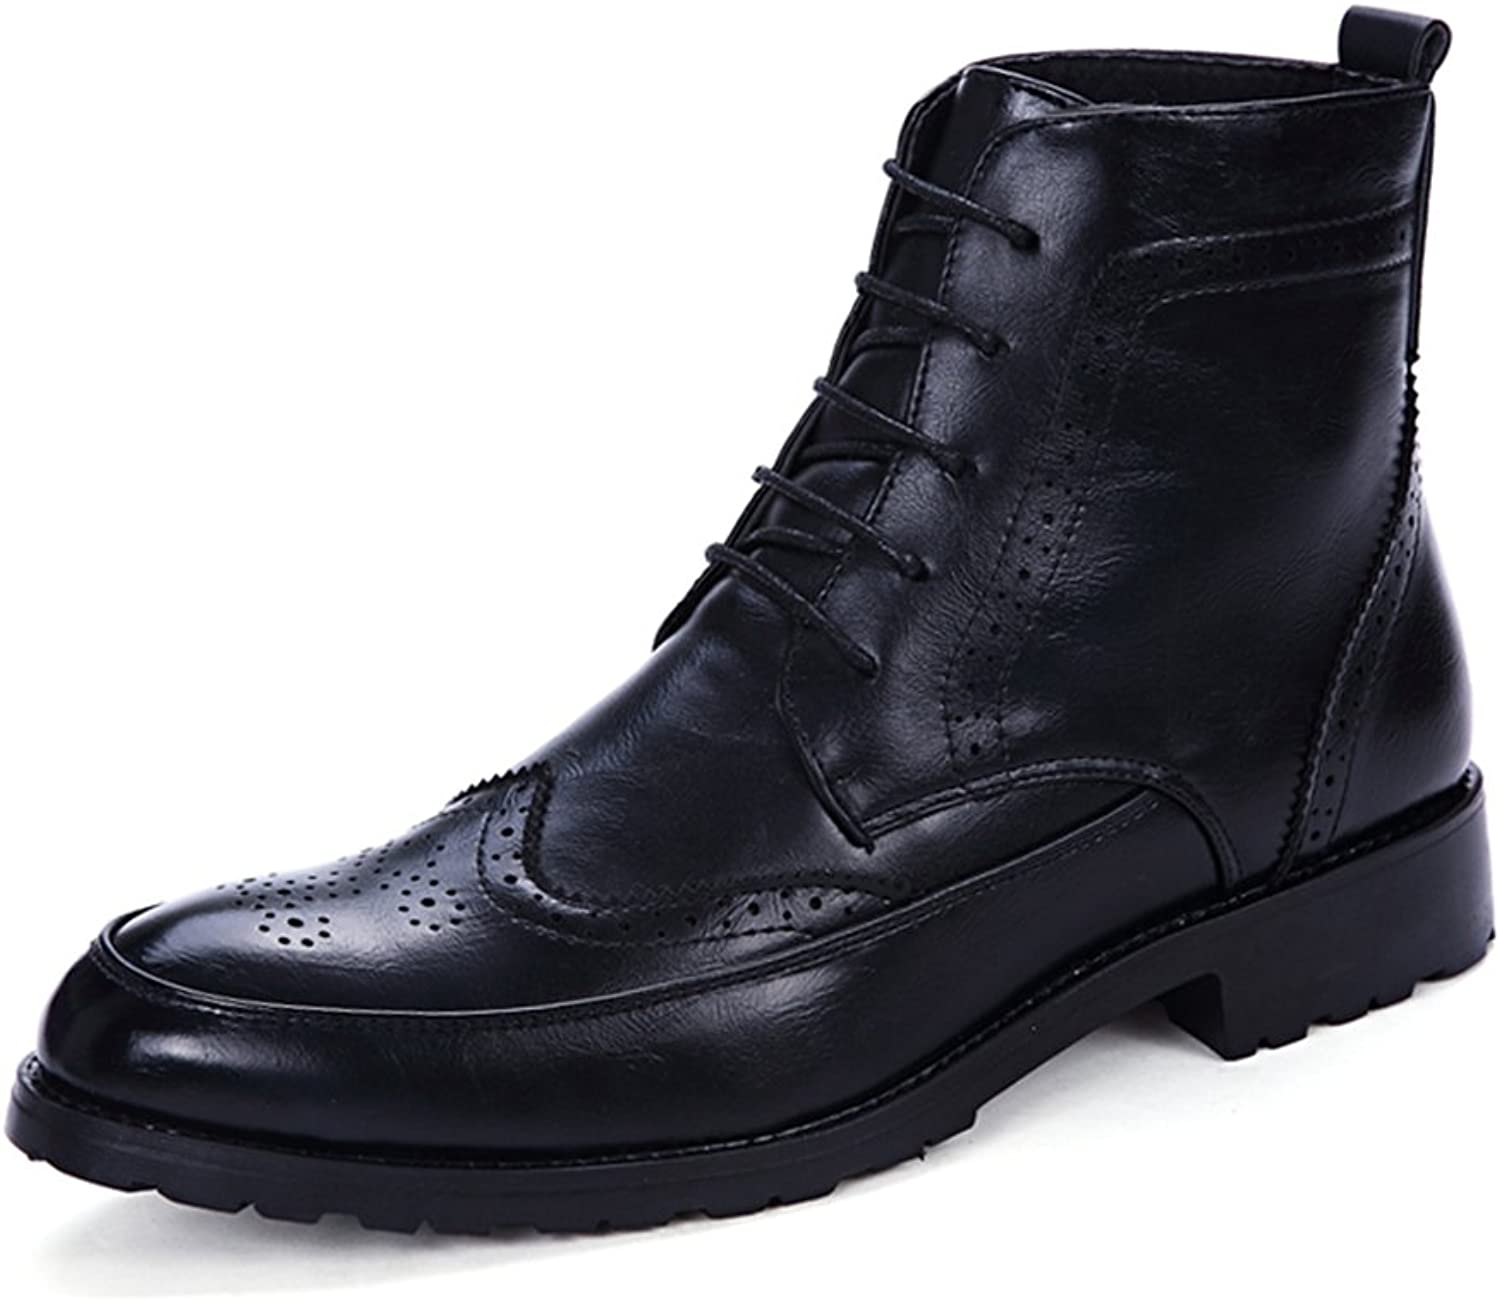 Tooling shoes Martin Boots Men's Ankle Boots Lace up Anti-Skidding Soft PU Leather High Top Oxford shoes Wingtip Military High-tops Boots (color   Black, Size   8 UK)